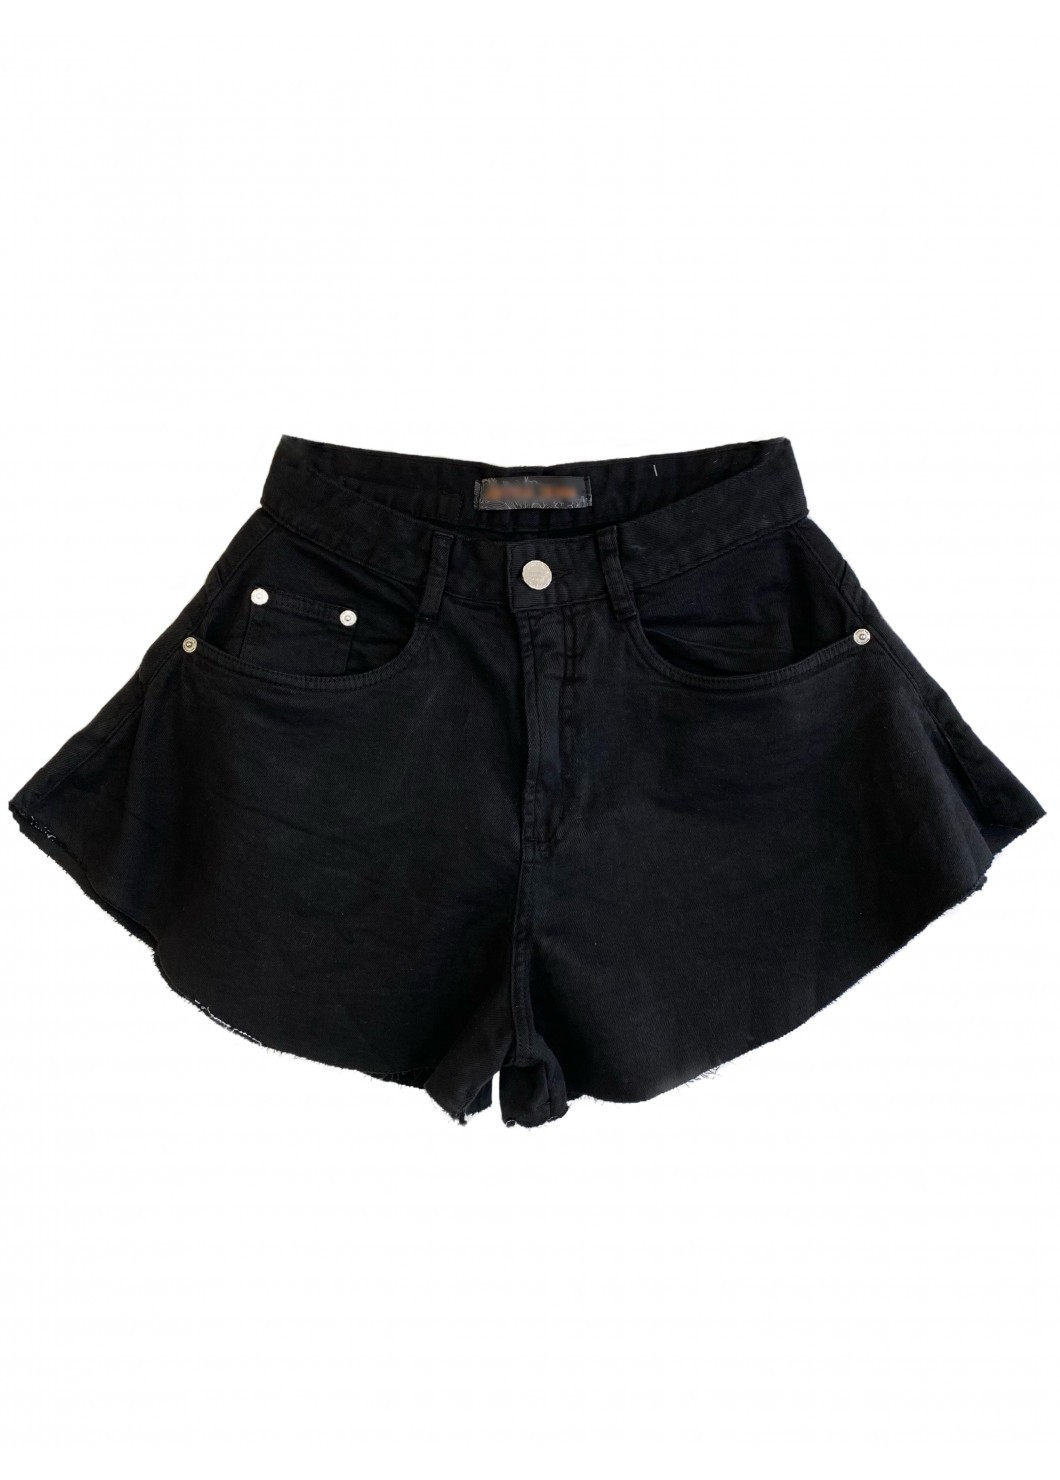 Shorts CALIFÓRNIA Preto